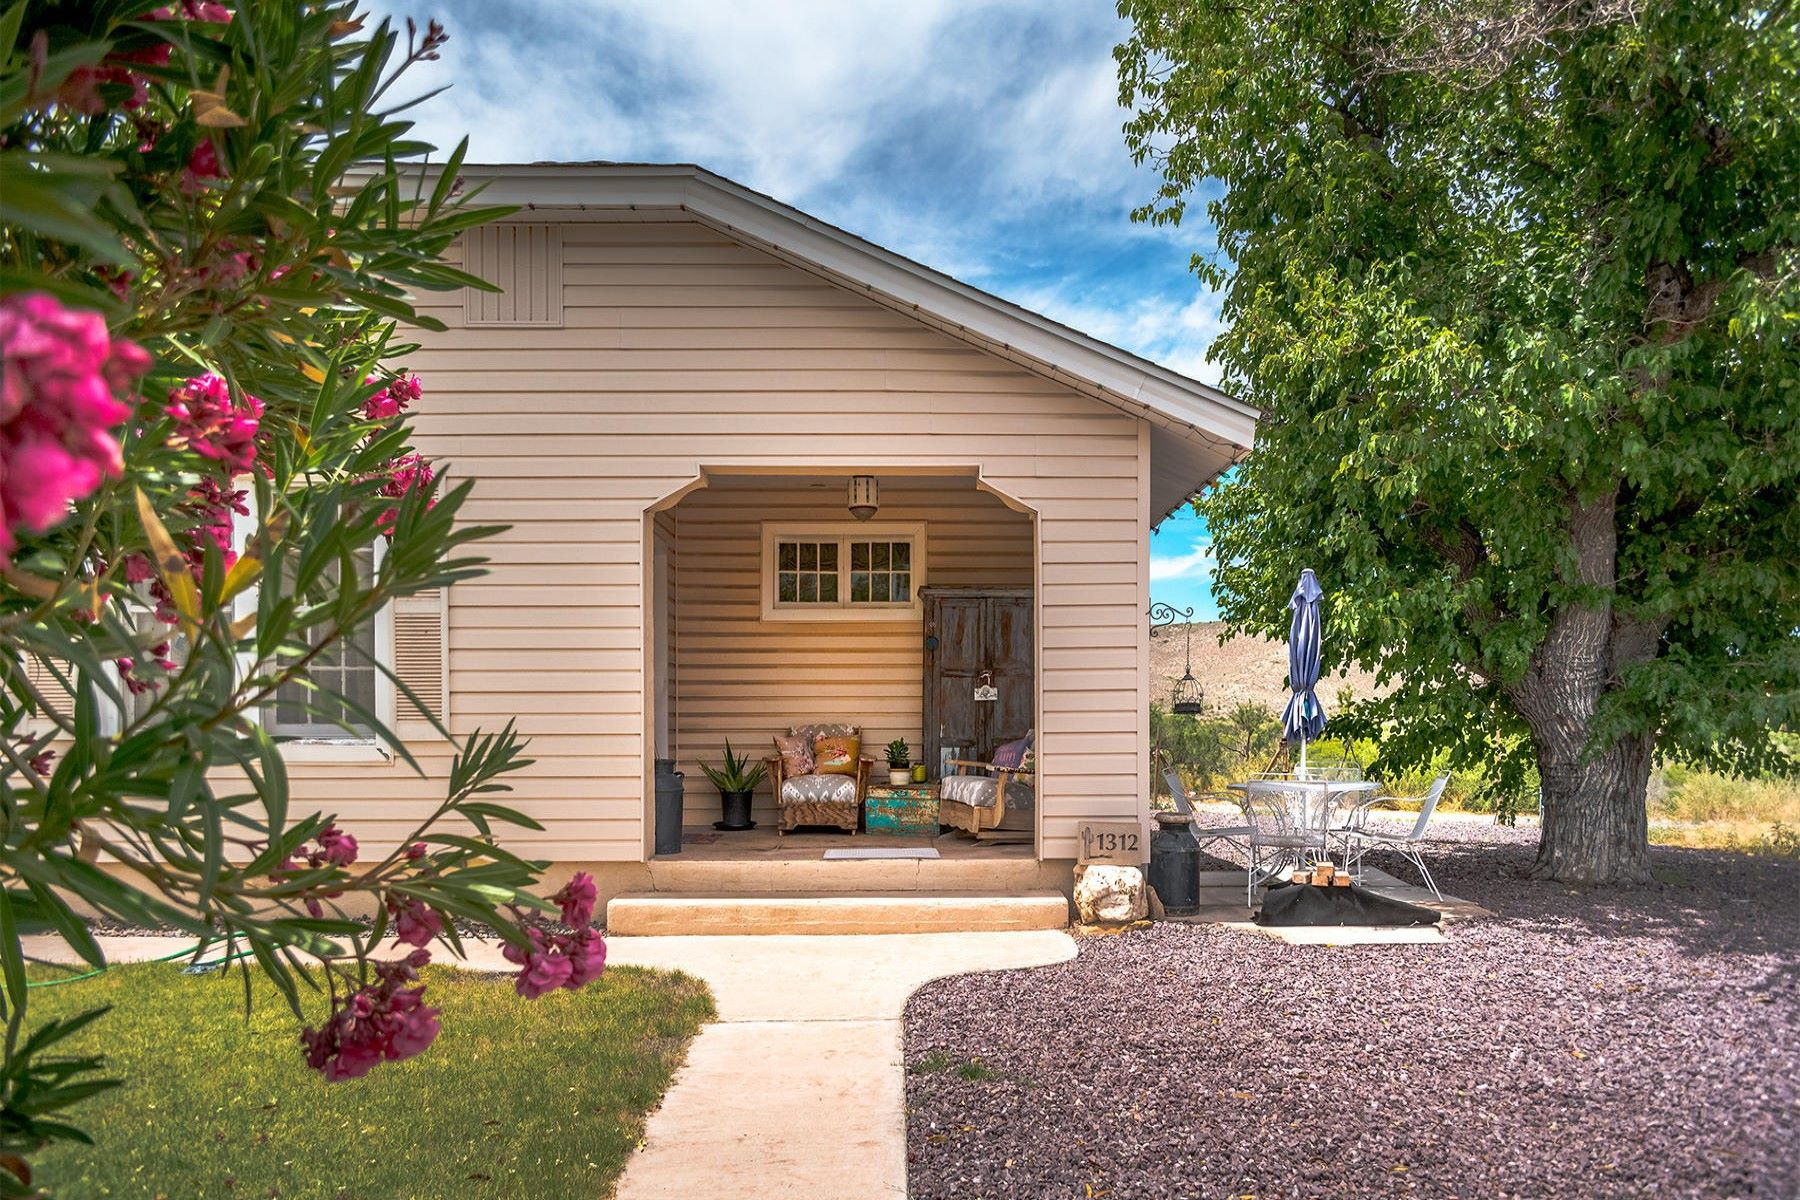 Single Family Homes for Active at Historic Cutie Pie 1312 First North St Clarkdale, Arizona 86324 United States